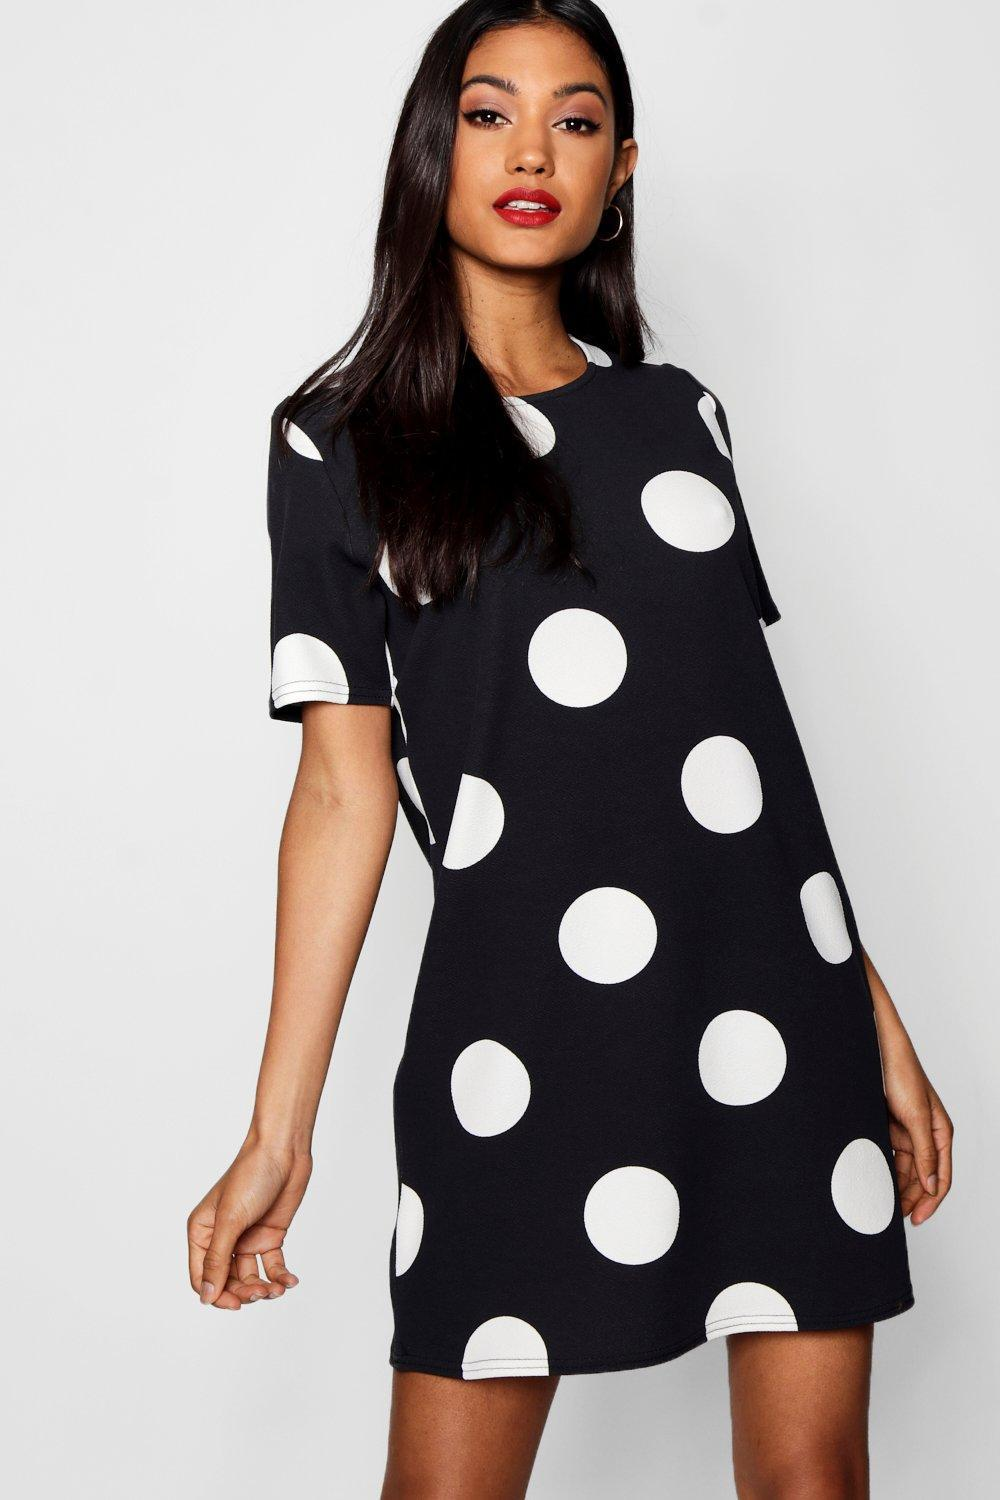 Boohoo Large Polka Dot Shift Dress Discount The Cheapest Cheap Sale Many Kinds Of Clearance Manchester Great Sale Pick A Best Official Site Cheap Price Ky53eqyGBS